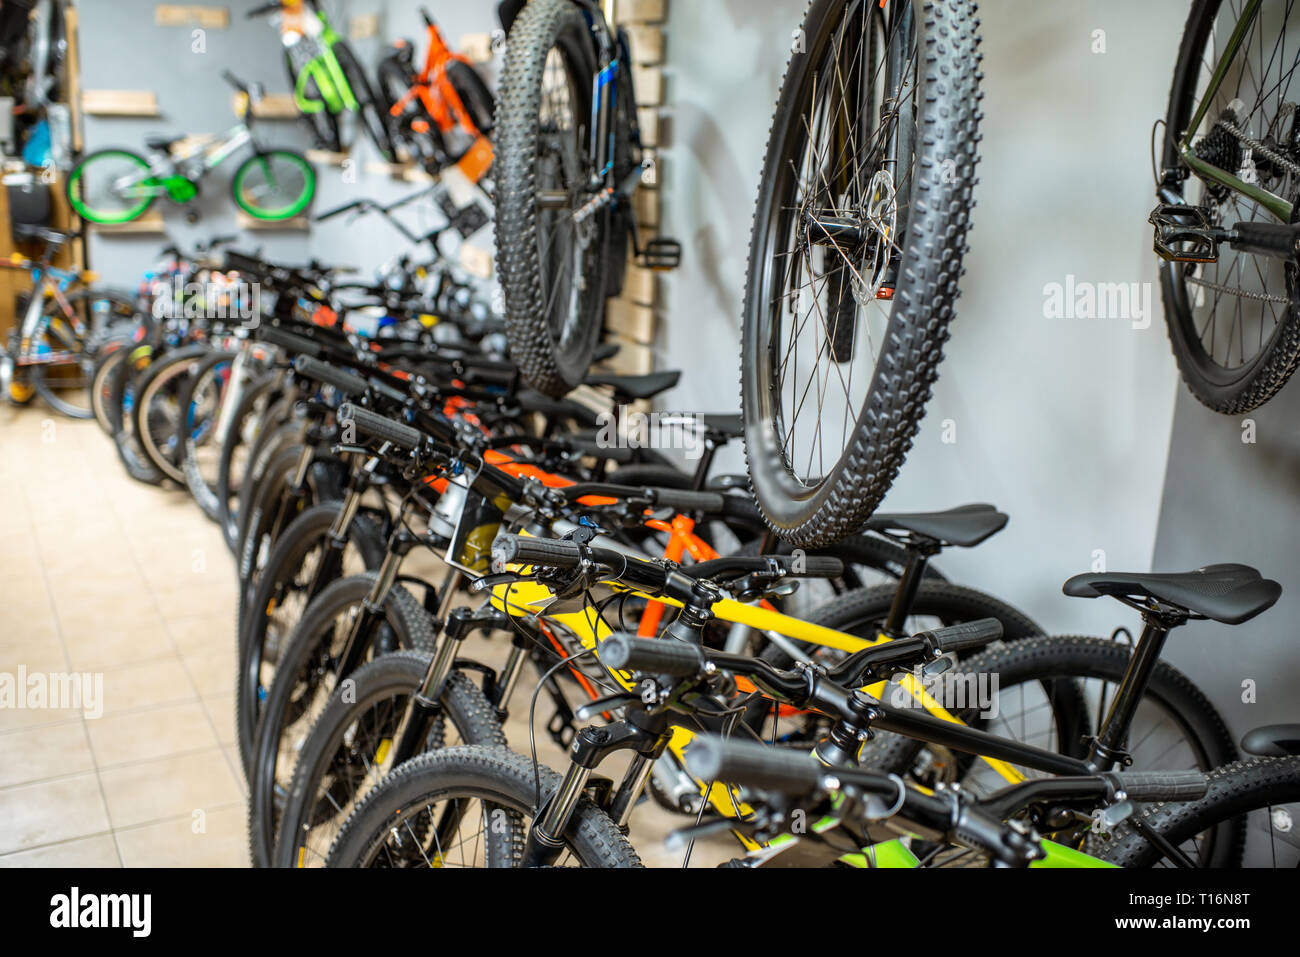 Lots of a new bicycles in the store - Stock Image